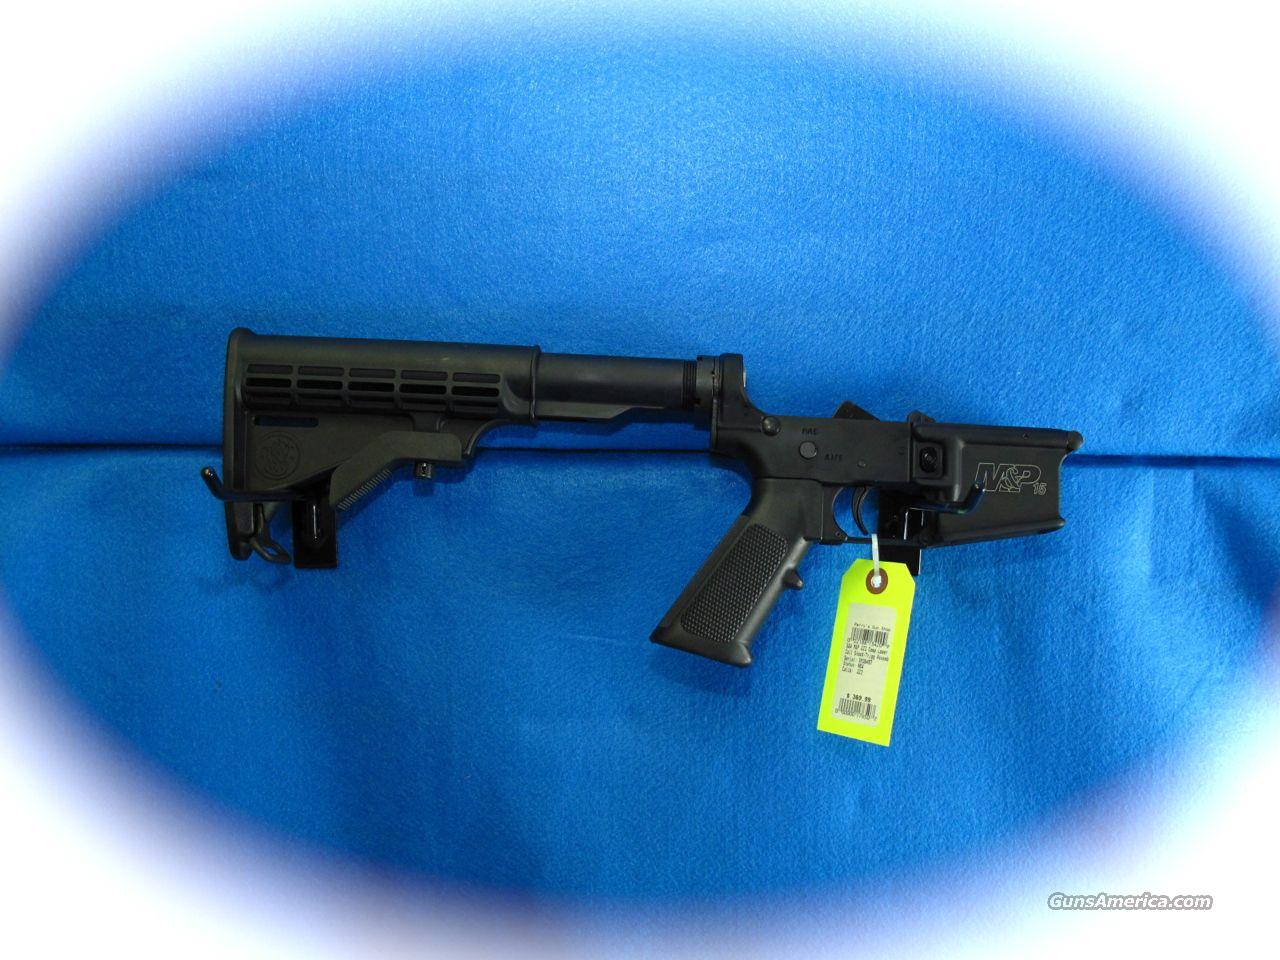 Smith & Wesson M&P Complete AR-15 Lower Receiver  Guns > Rifles > Smith & Wesson Rifles > M&P